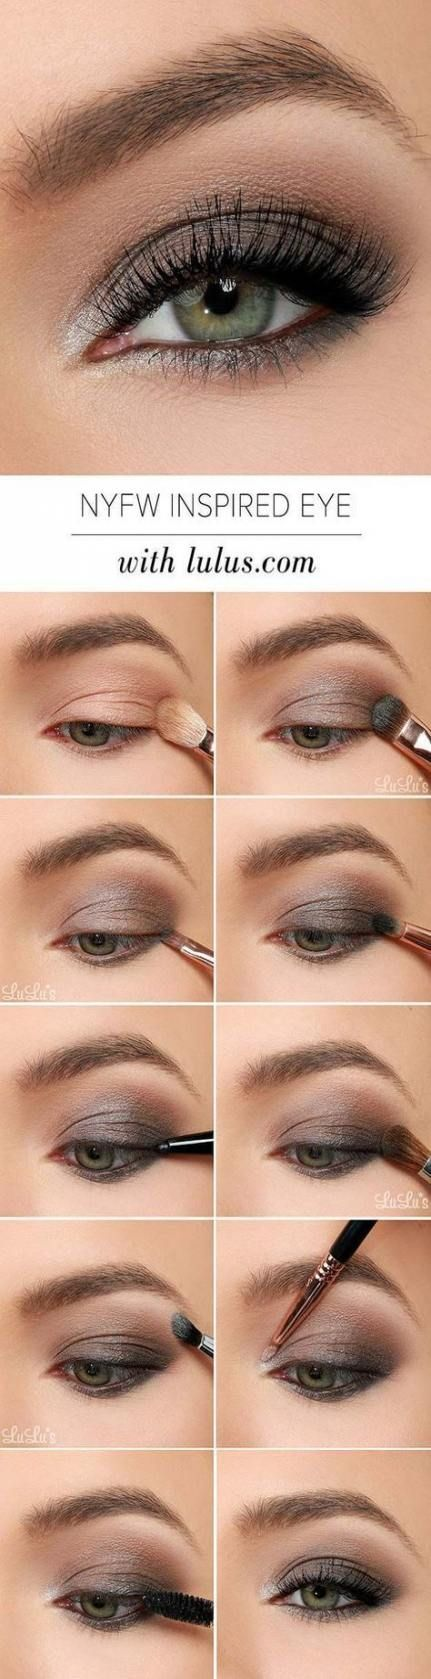 Makeup Tutorial For Brown Eyes For Teens Eyebrows 60 Ideas For 2019